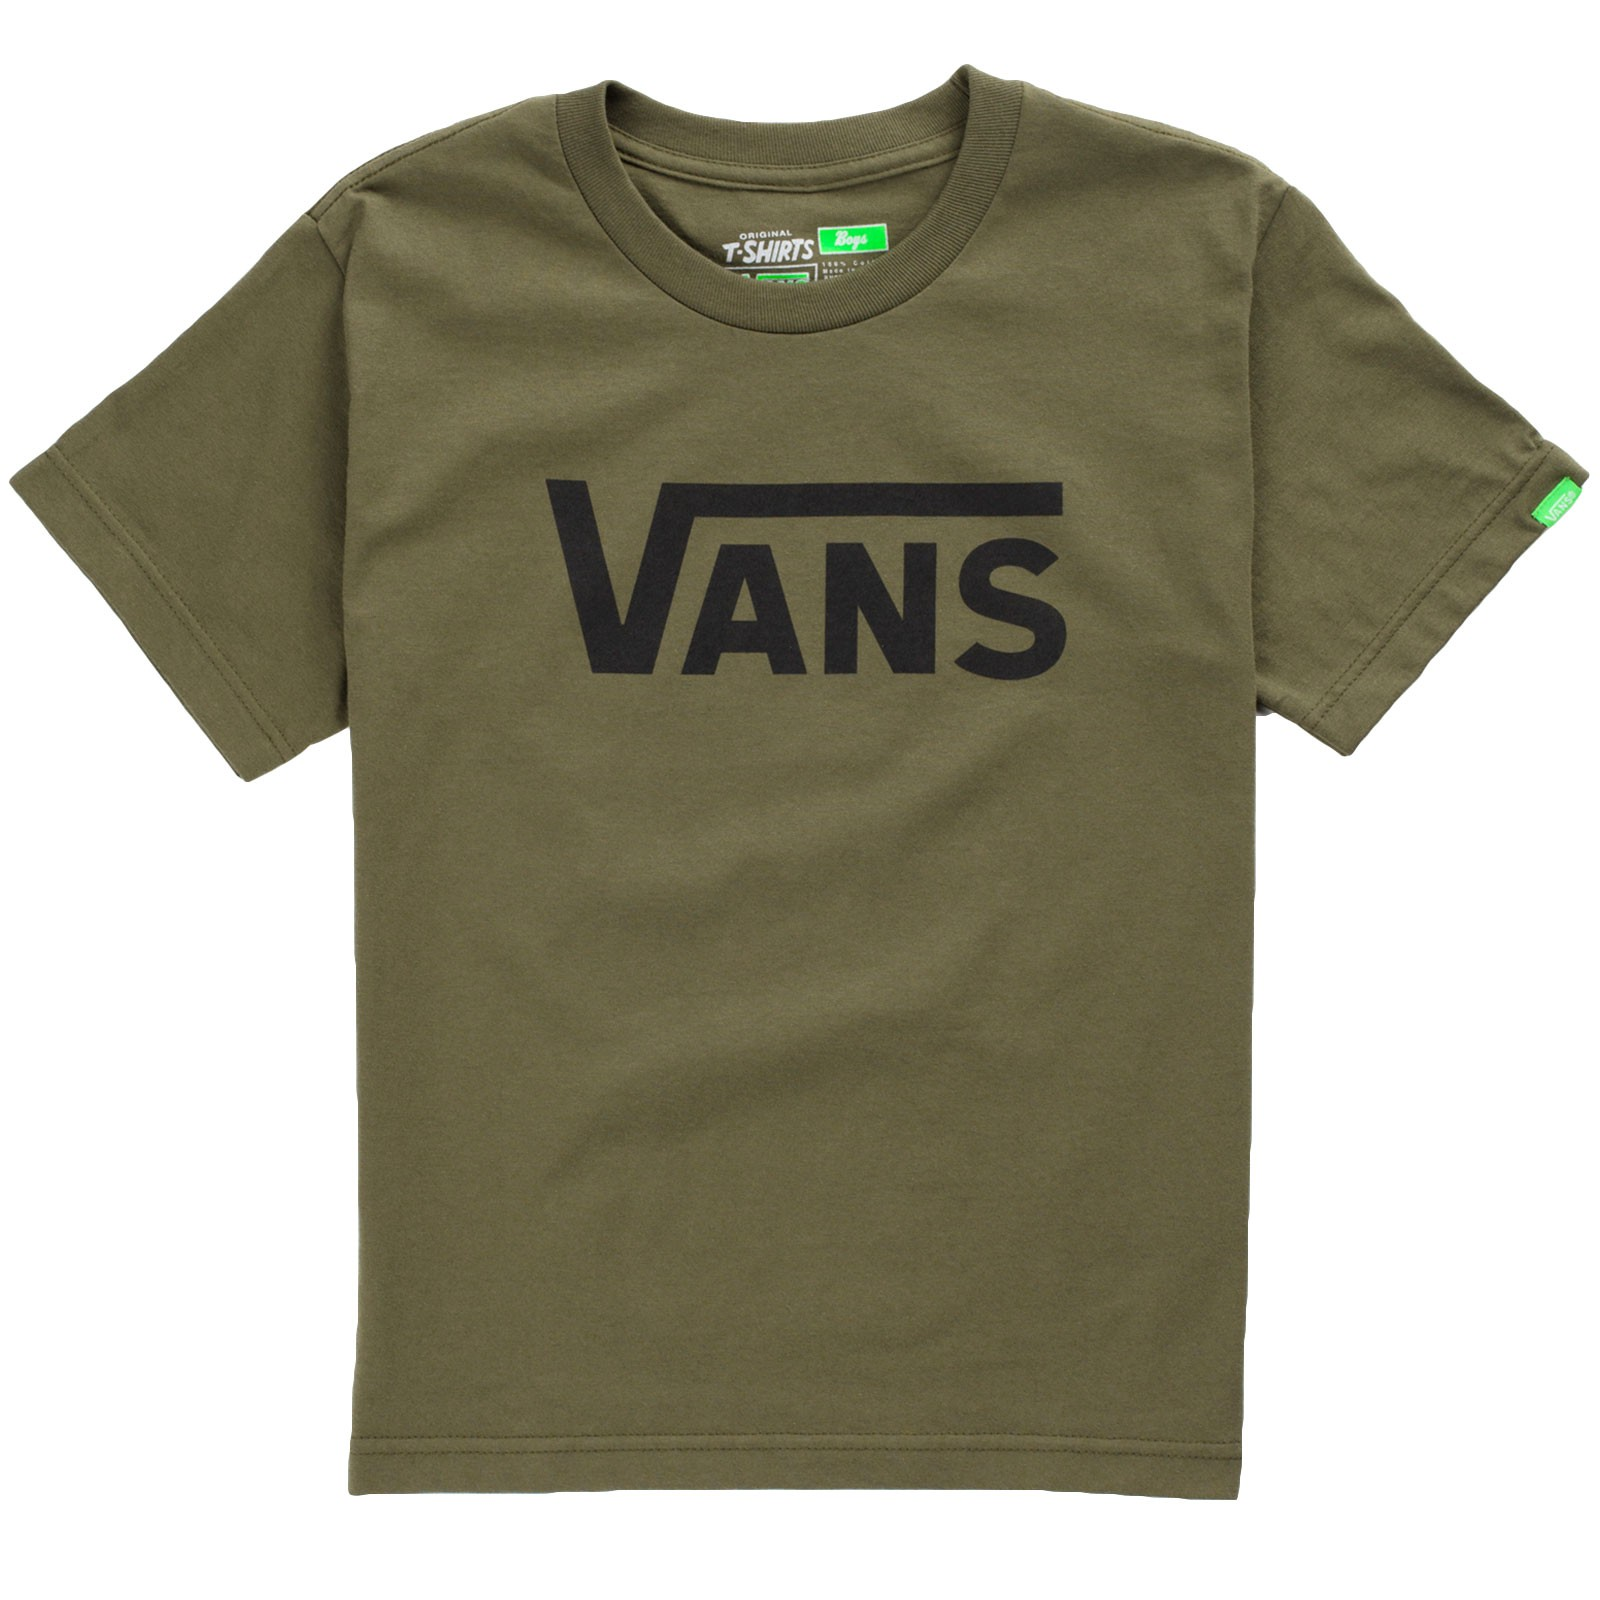 Vans Classic Youth T-Shirt - Military Green/Black